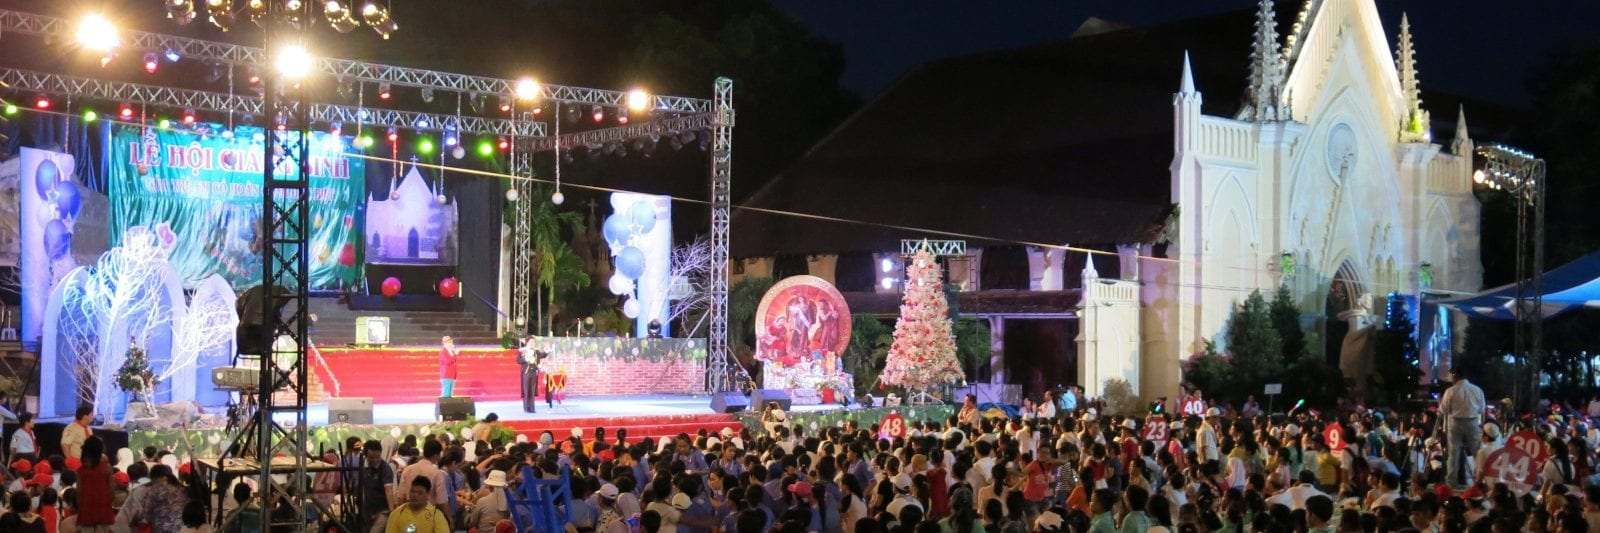 Ho Chi Minh City Archdiocese Children Christmas celebration in December